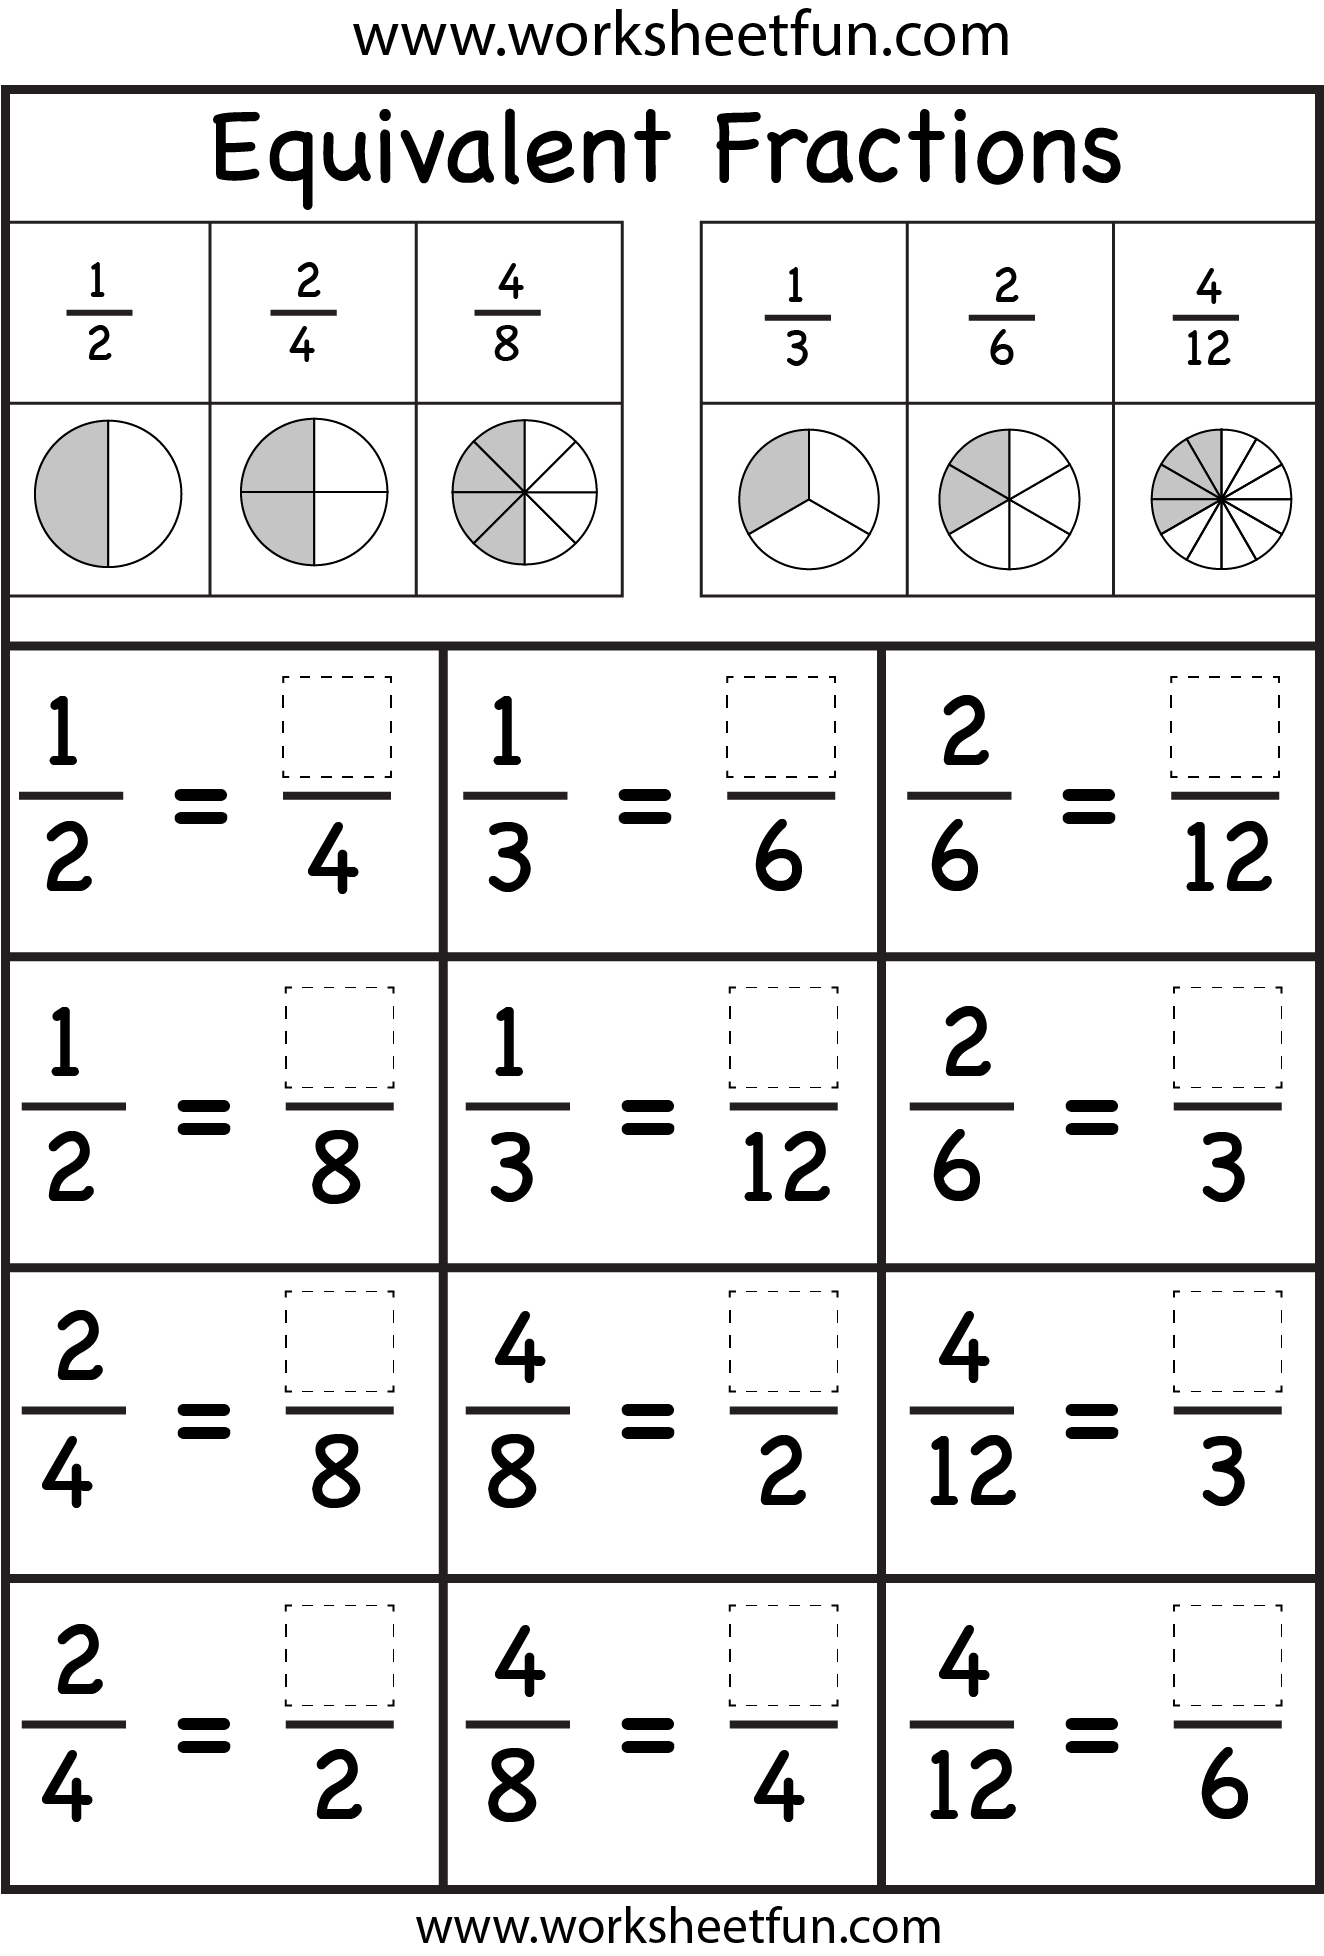 worksheet Equivalent Fractions Worksheet 3rd Grade equivalent fractions ashley walters elizabeth worksheet lots of worksheets